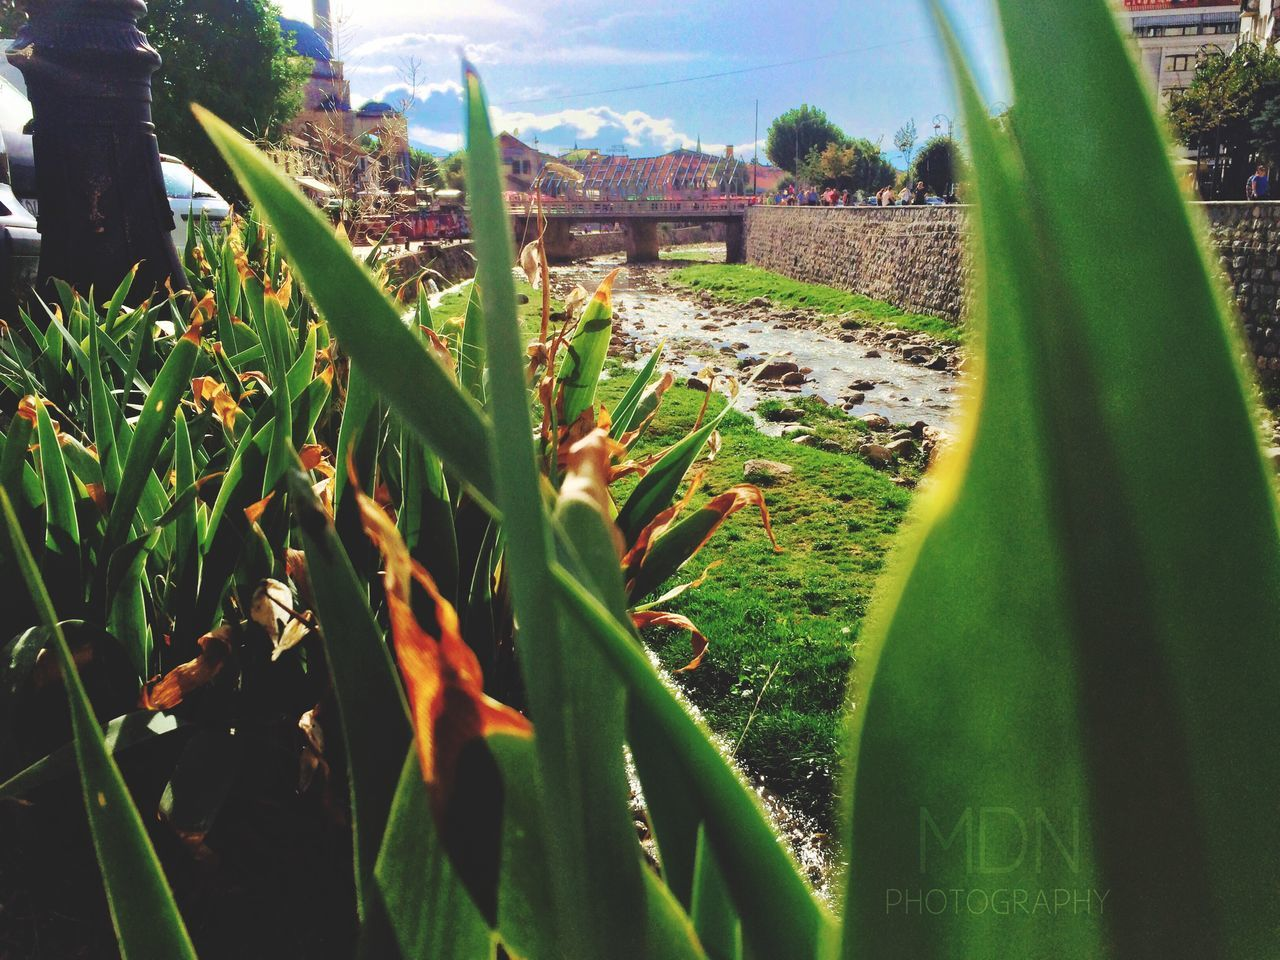 growth, field, no people, green color, day, grass, outdoors, plant, architecture, nature, sky, close-up